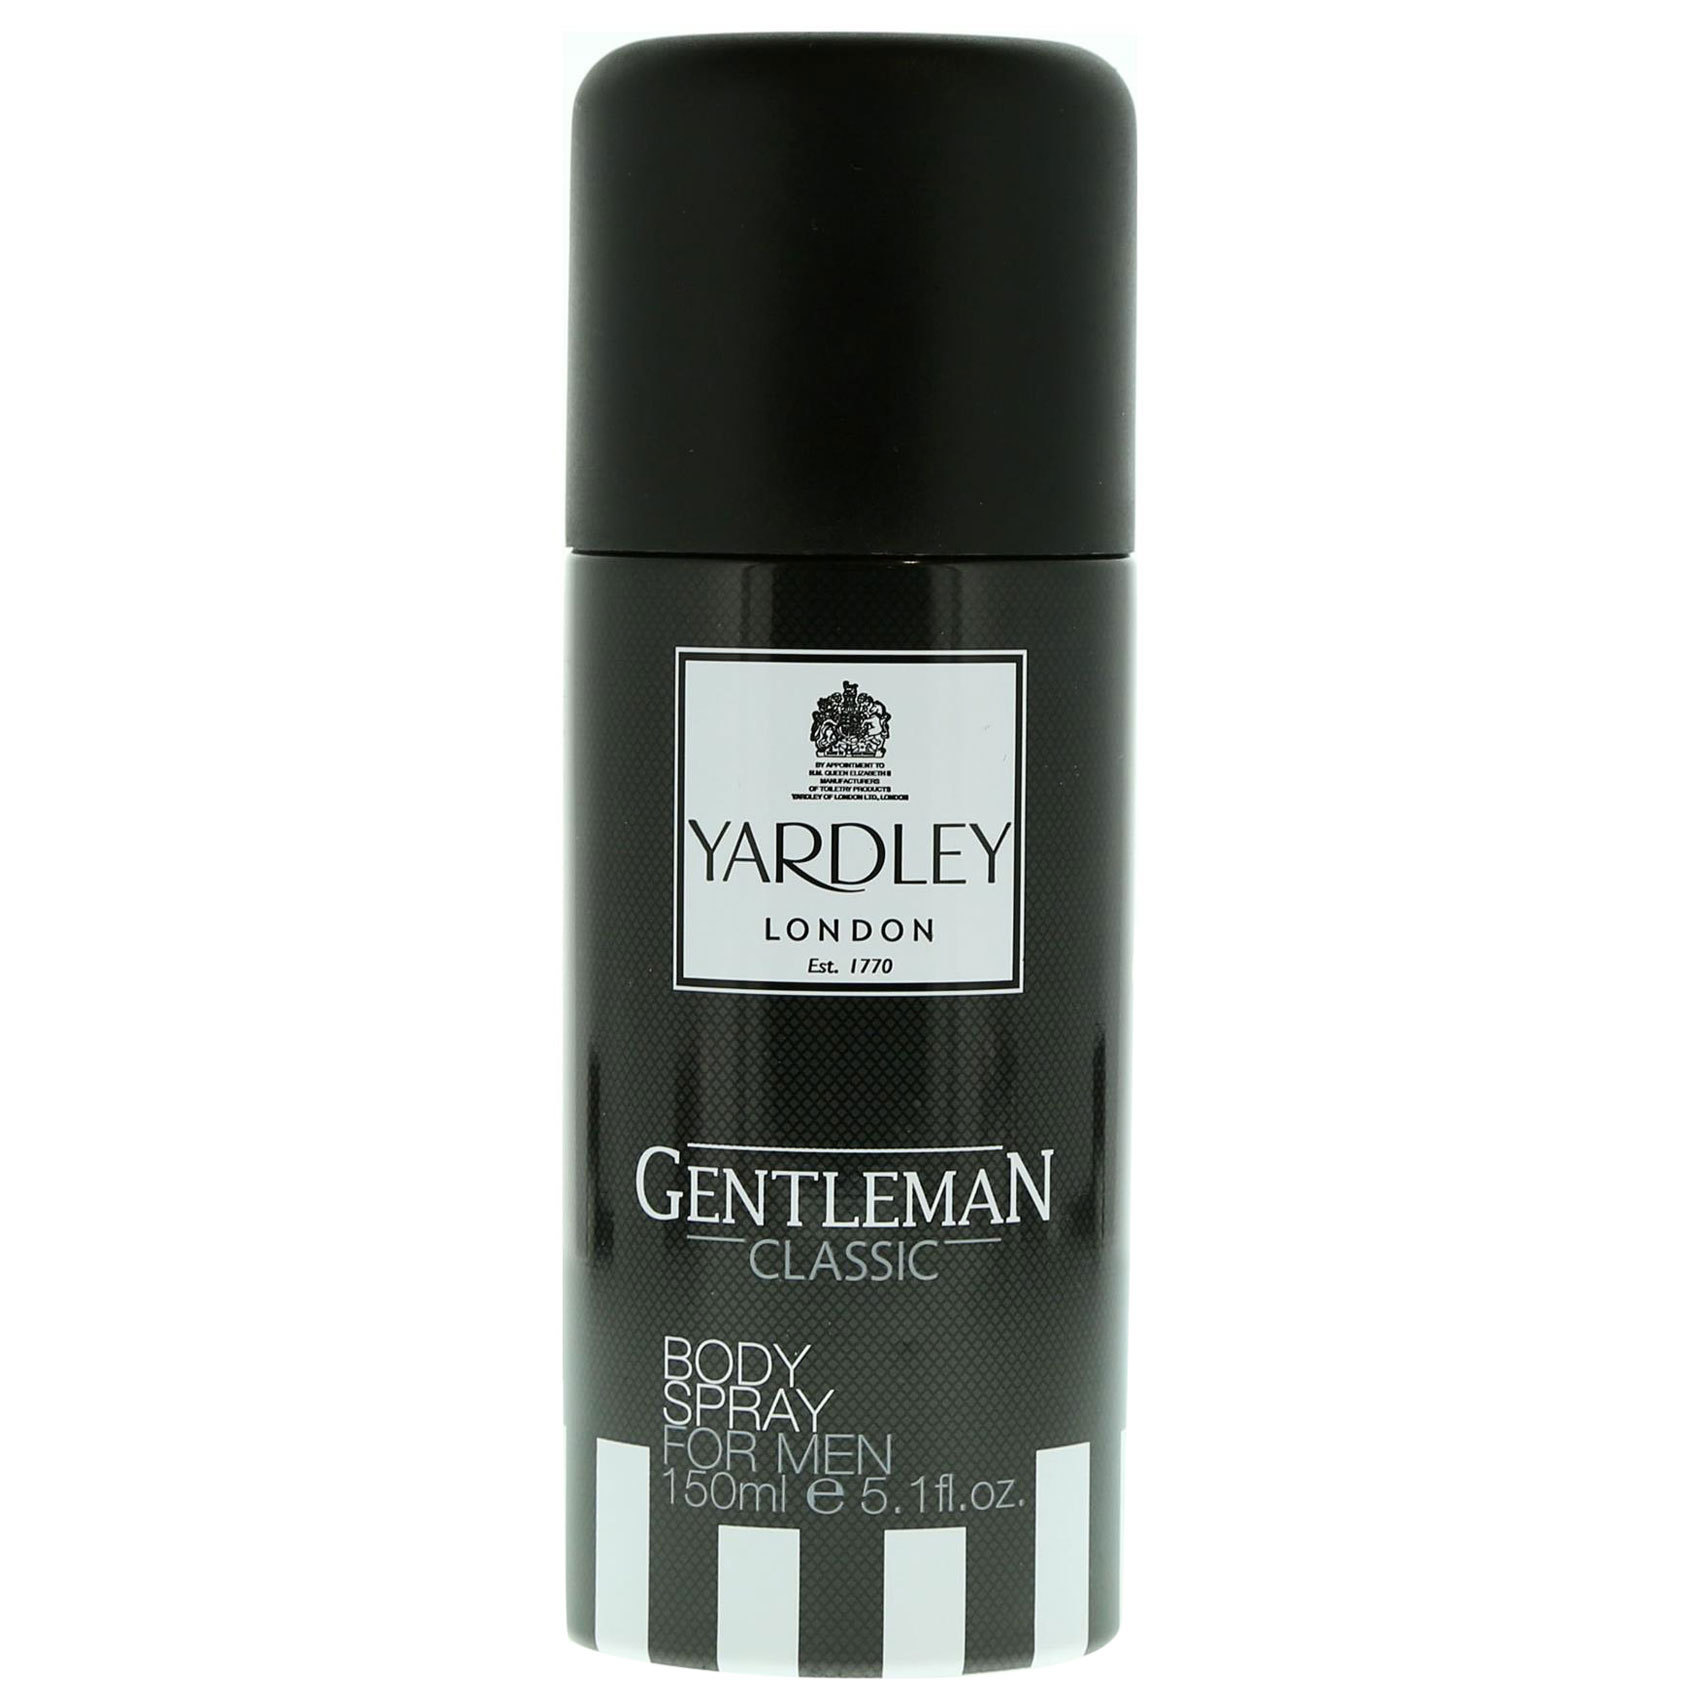 YARDLEY GENTLEMAN BODYSPRAY 150ML